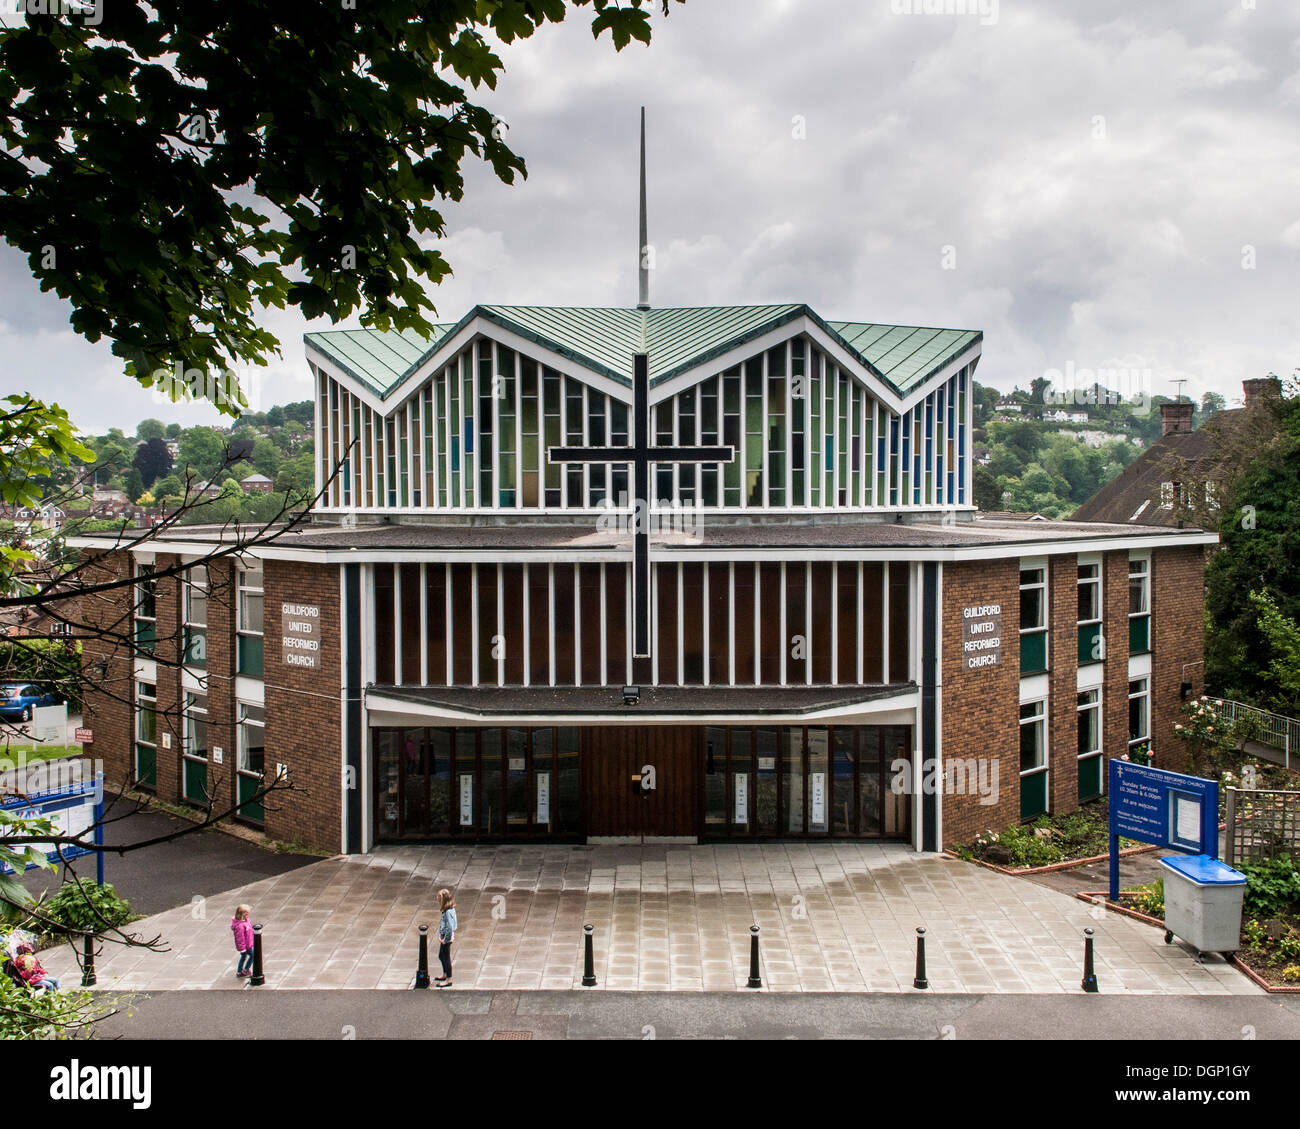 Guildford United Reformed Church, Guildford, United Kingdom. Architect: Unknown, 1967. Stock Photo